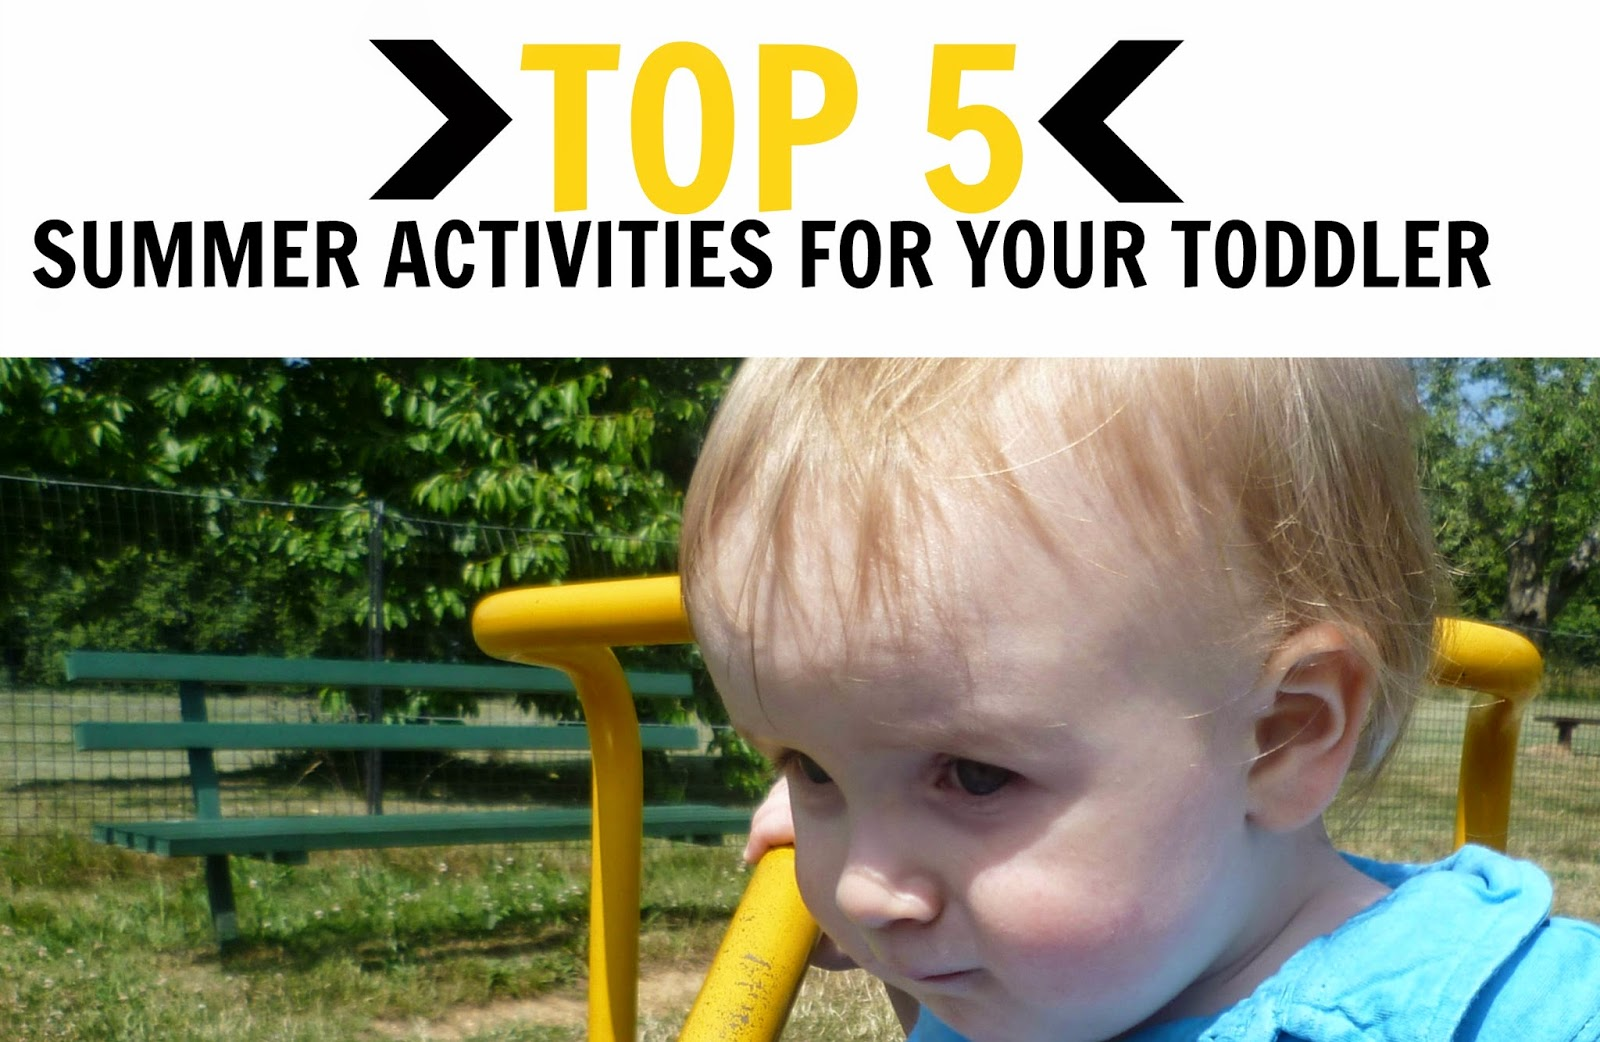 Top 5 Summer Activities For Toddlers